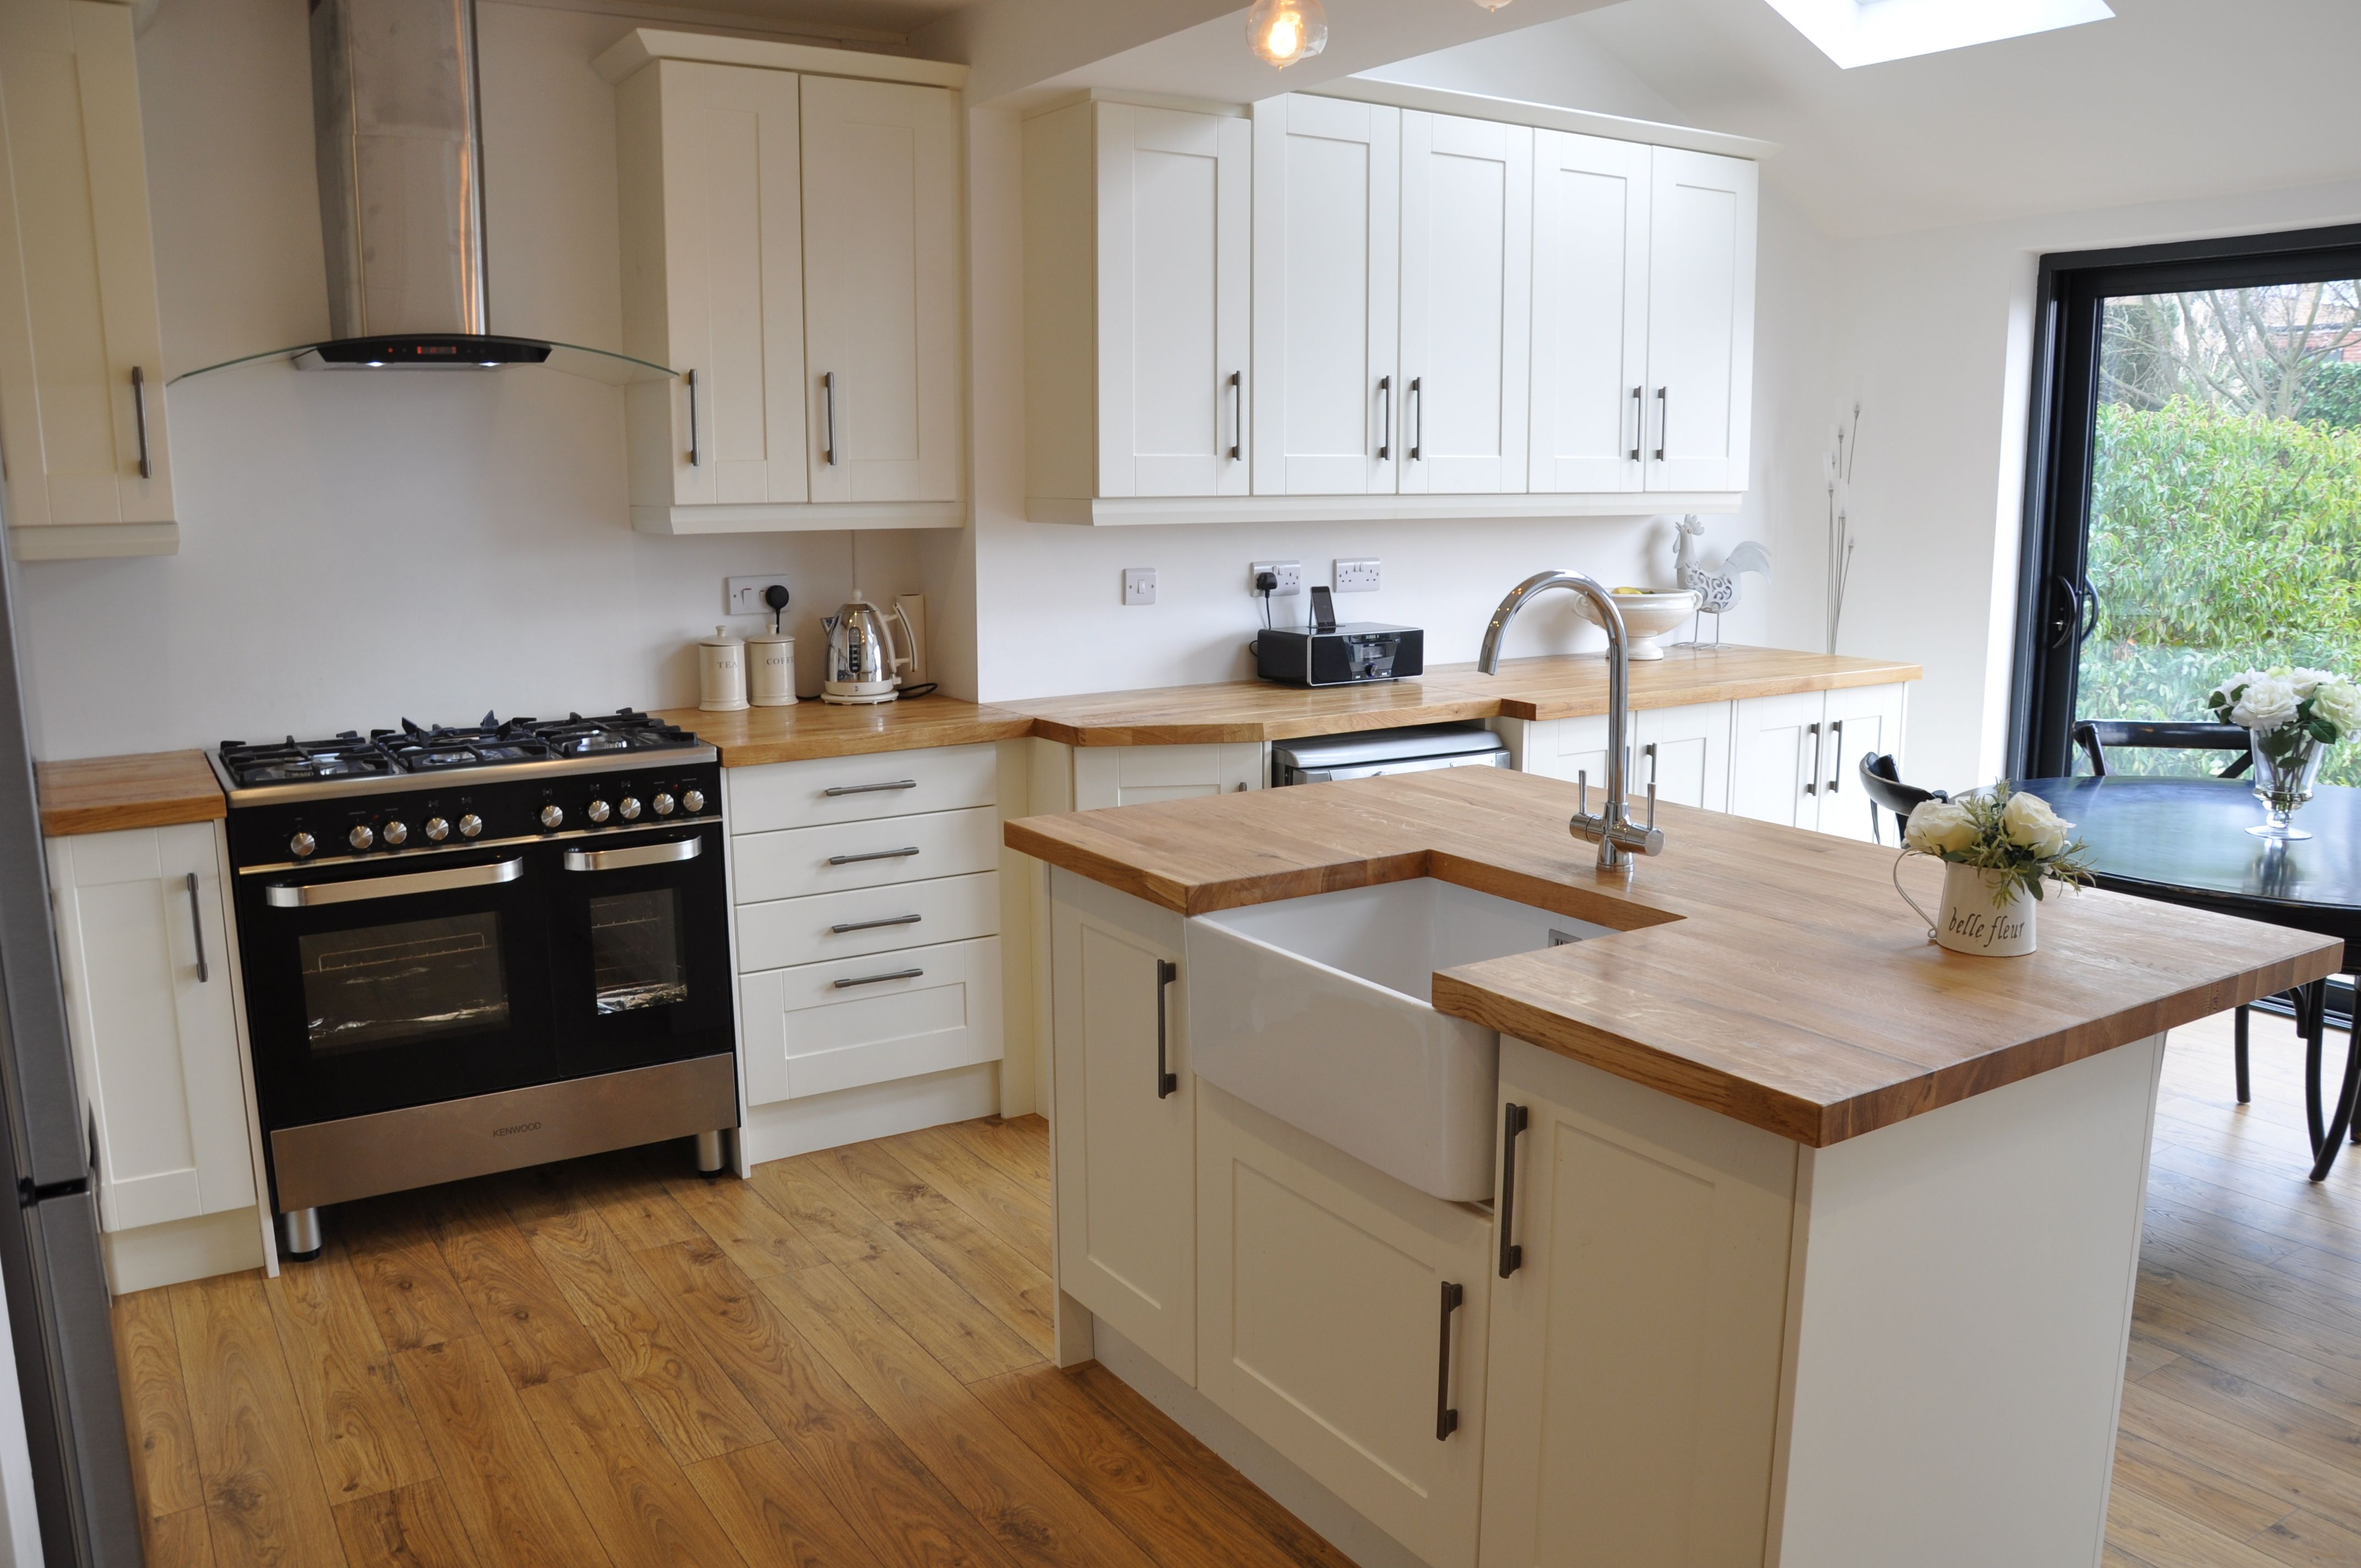 Image Result For Butcher Block And White Appliances Kitchen